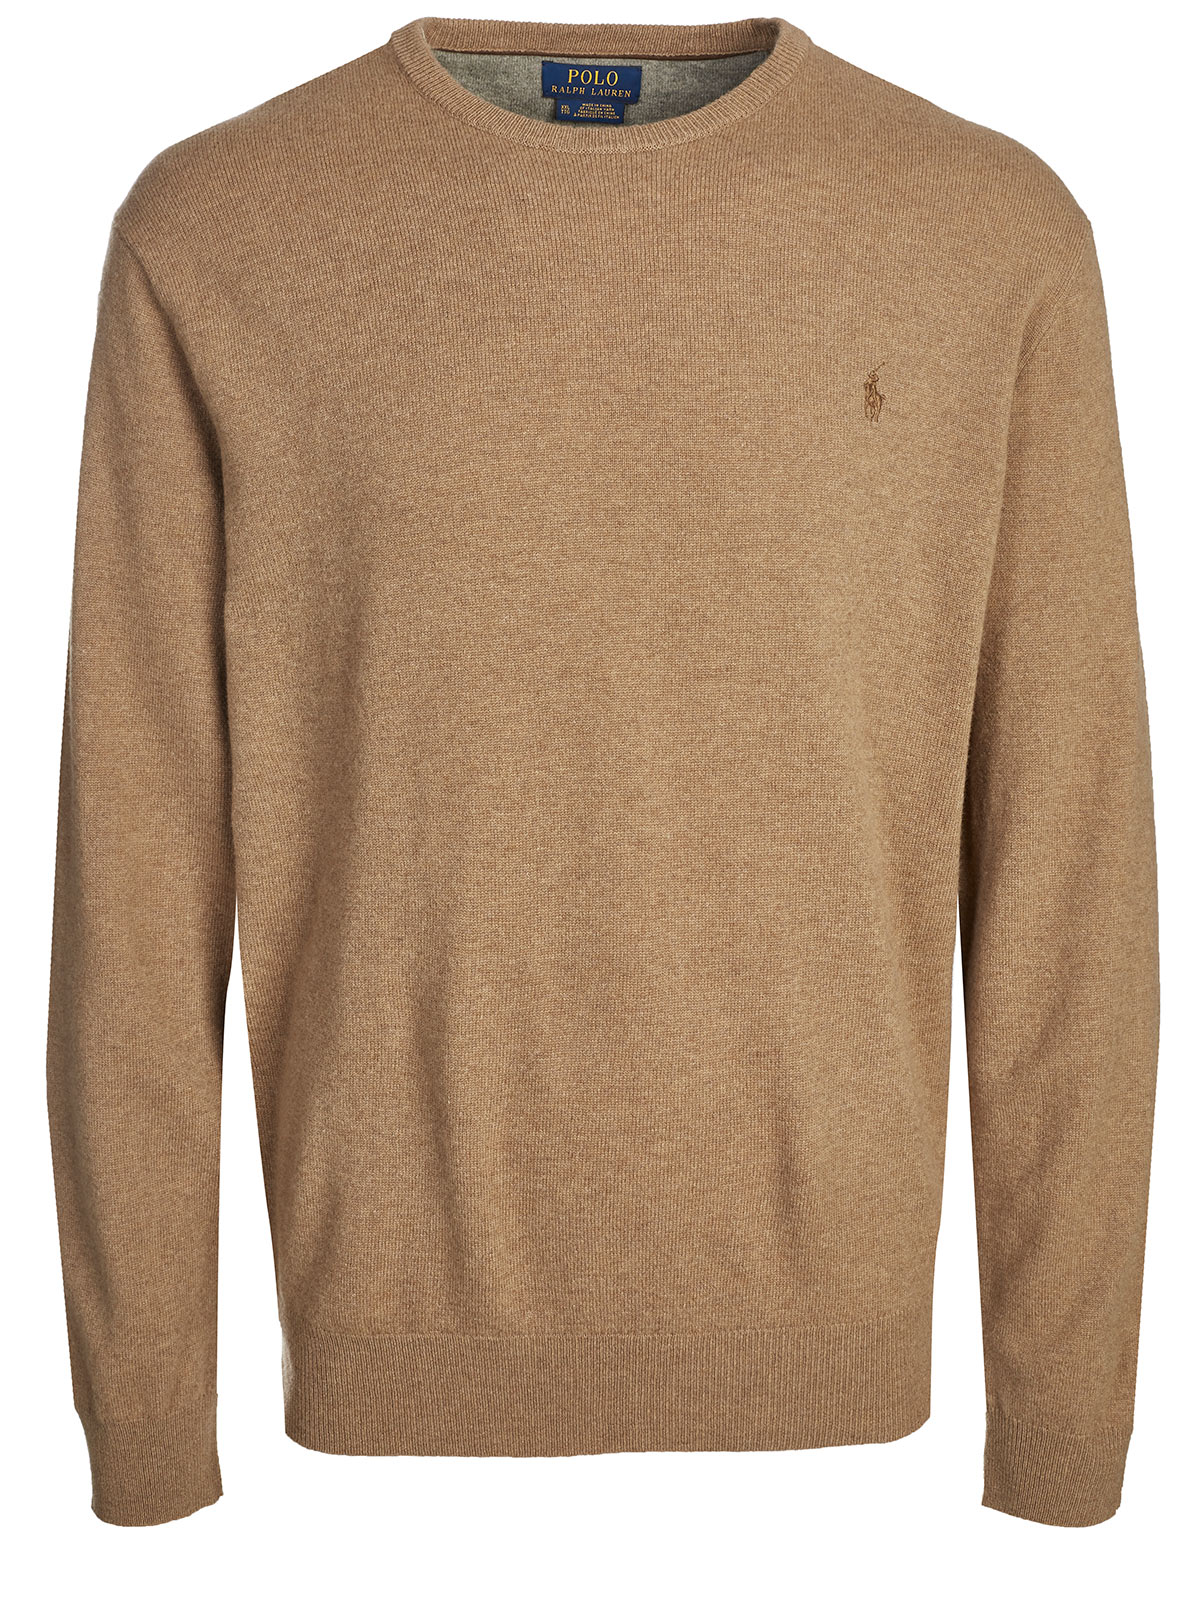 RALPH LAUREN PULLOVER polo by ralph lauren pullover brown | fashionesta online shop WELDALZ